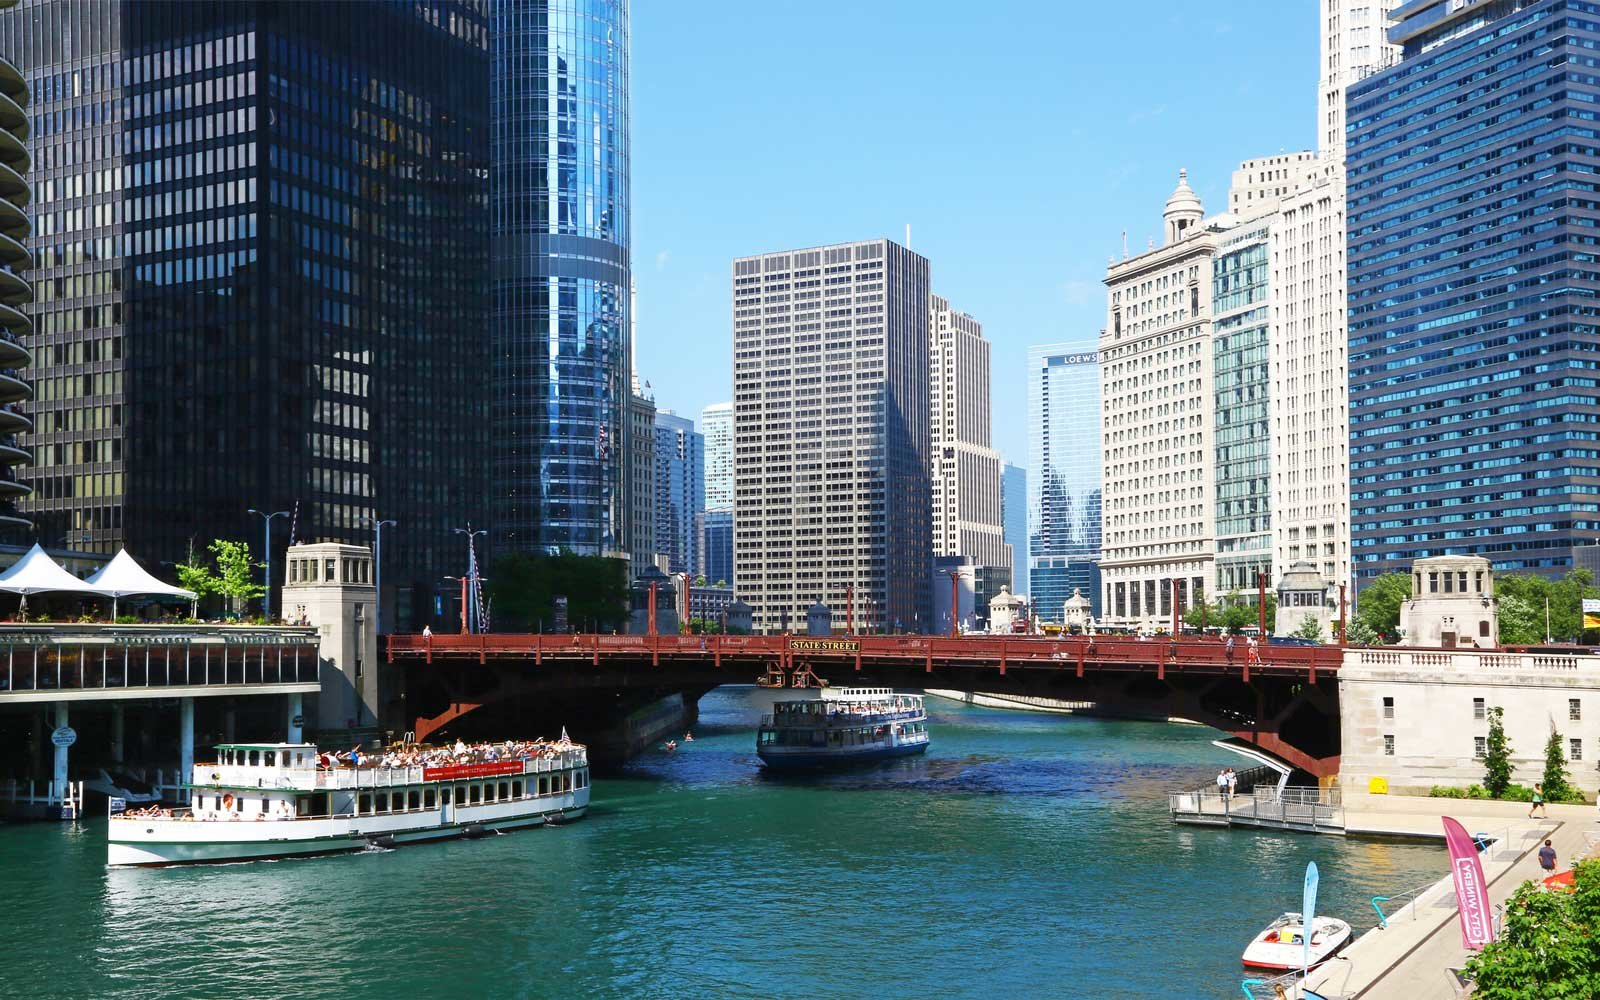 Ferries in Chicago river